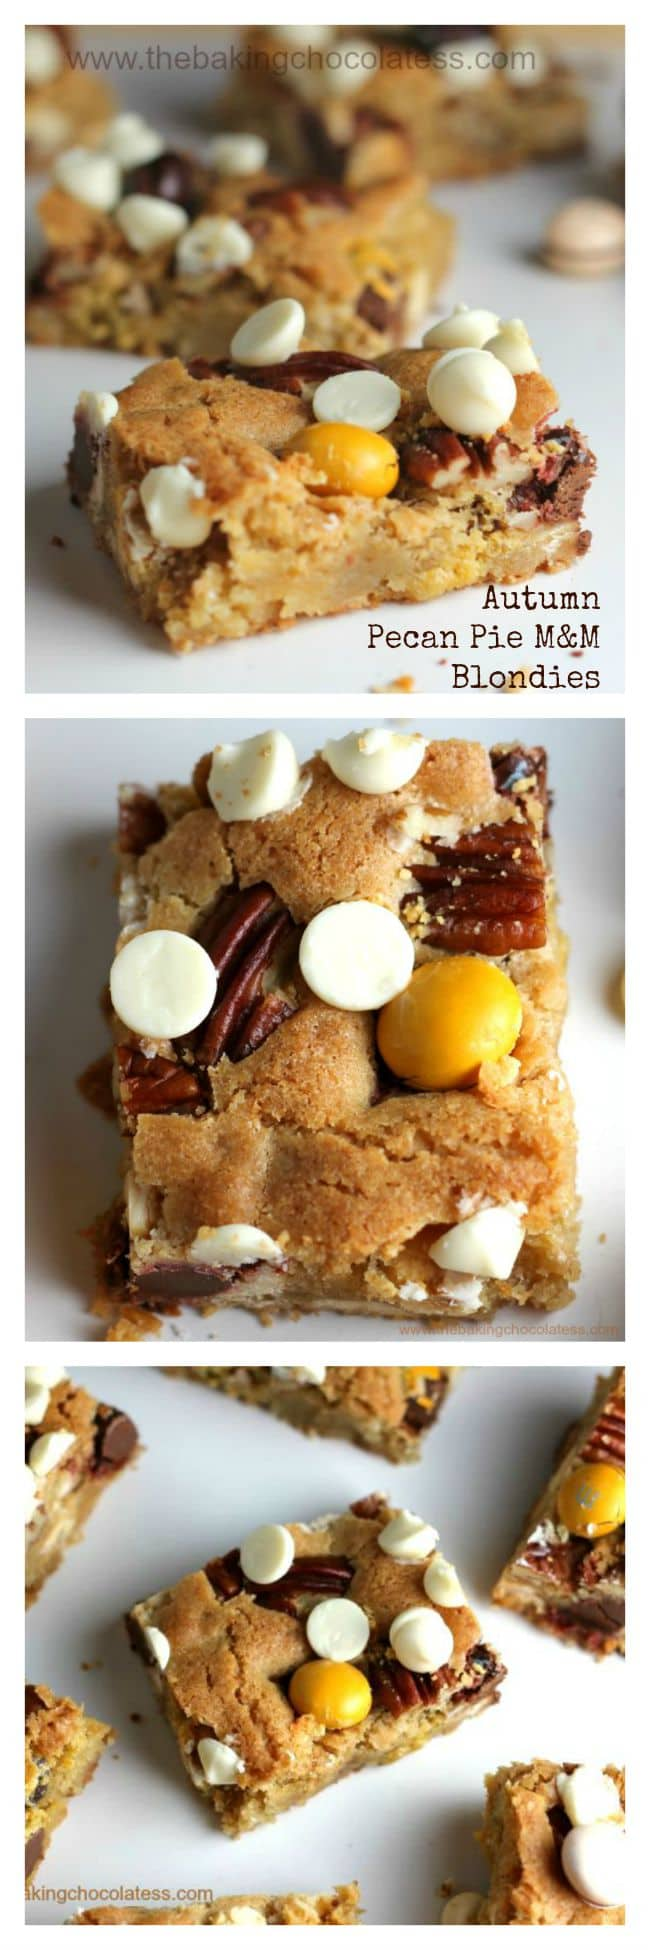 Autumn Pecan Pie M&M Blondies - These gorgeous, buttery blondies are stuffed with white chocolate chips, crunchy pecans and the belle of the ball